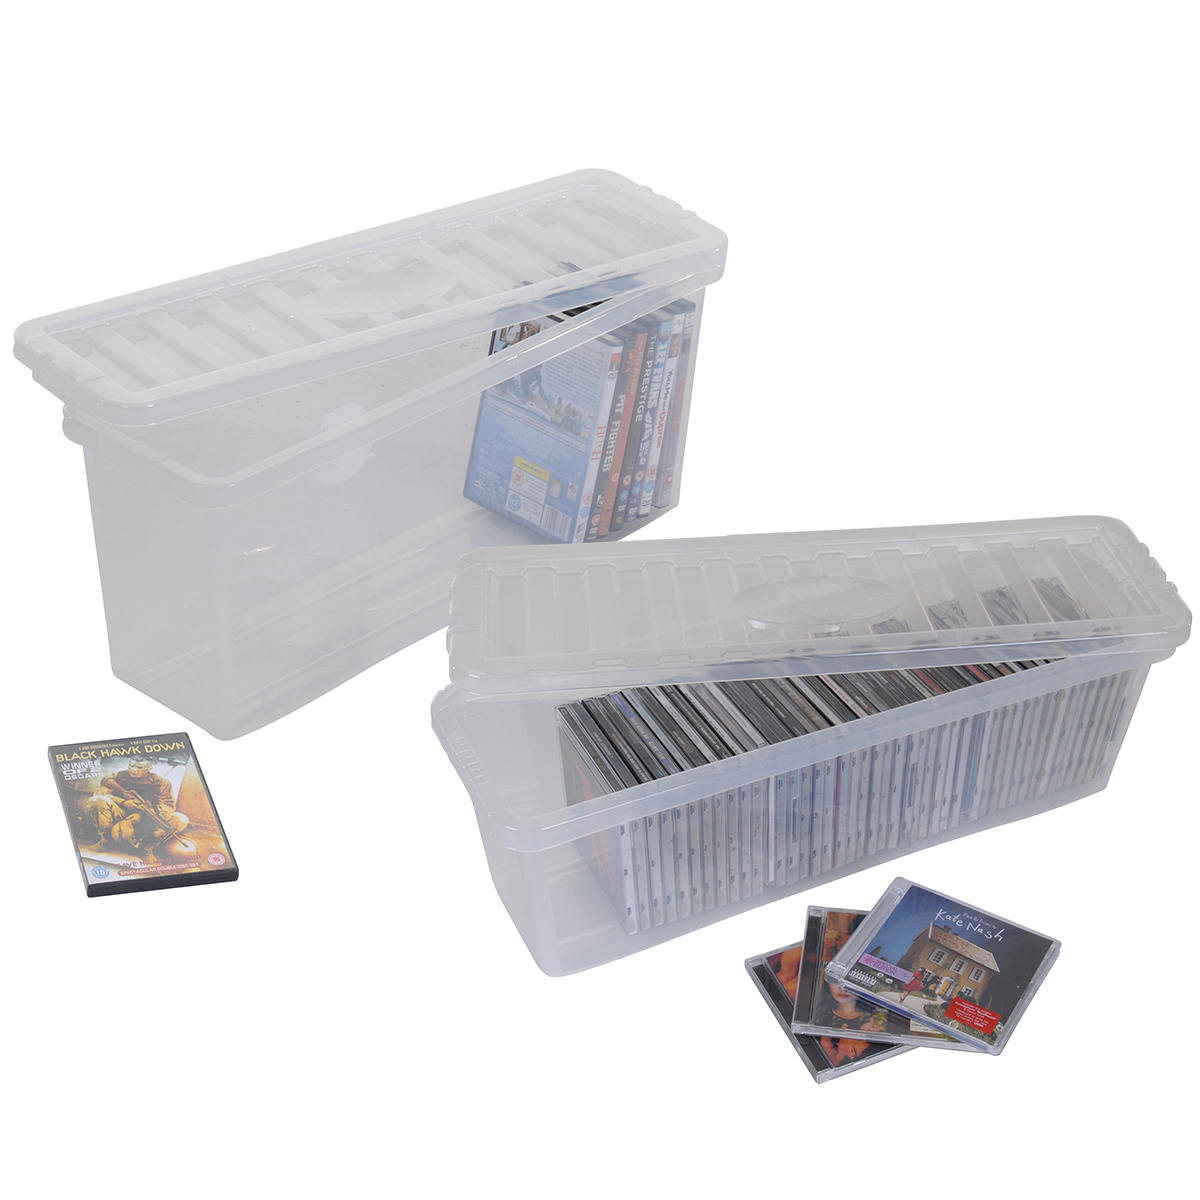 plastic cd dvd storage boxes box clear storage containers hold 52 cds 36 dvds ebay. Black Bedroom Furniture Sets. Home Design Ideas